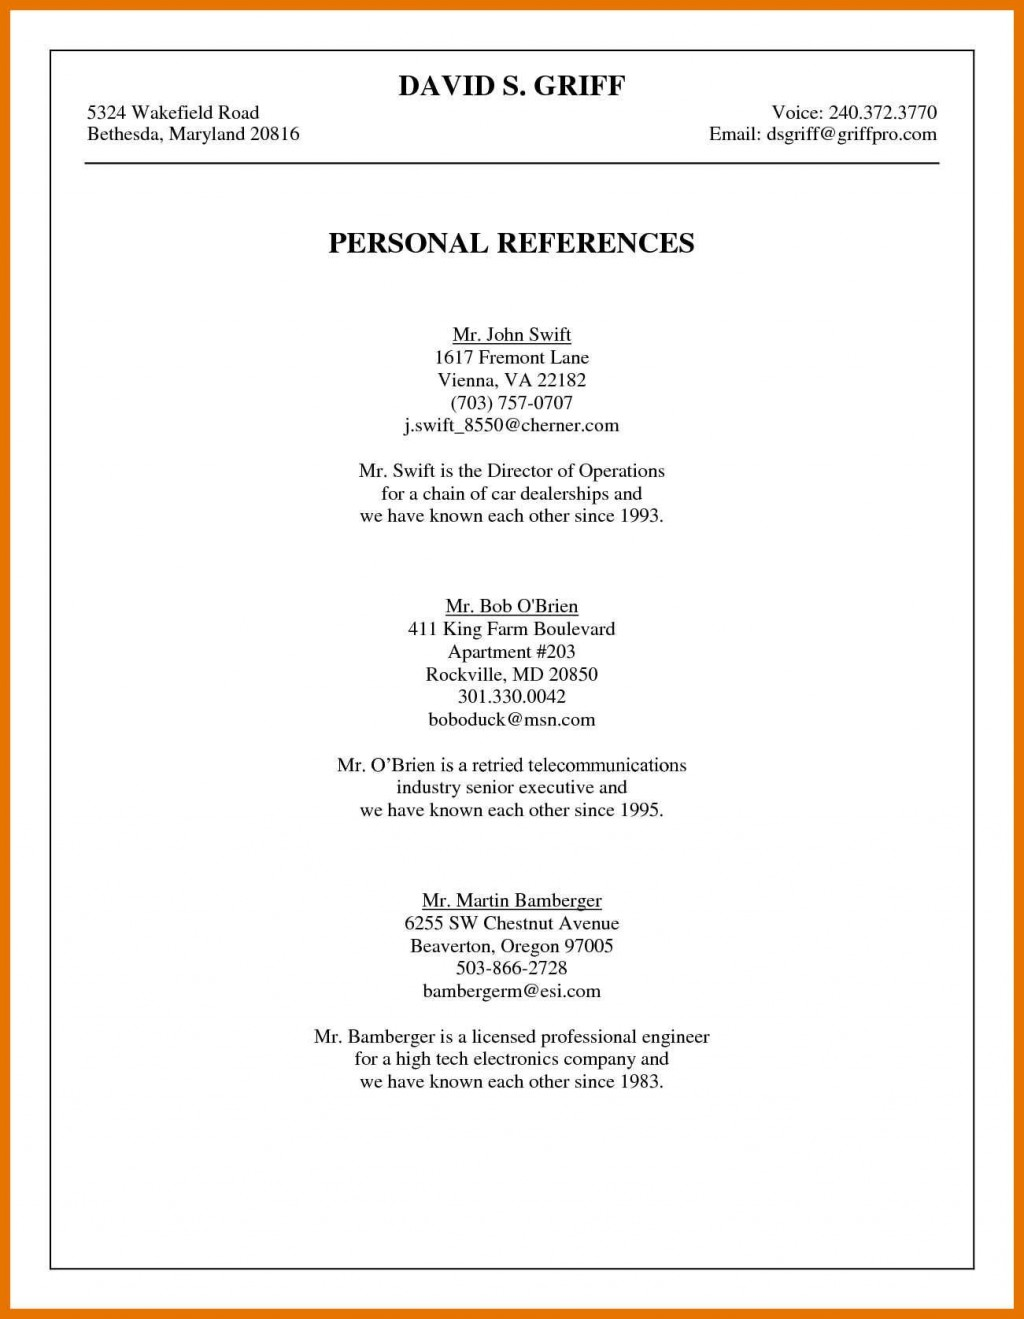 004 Excellent List Of Reference Template High Resolution  Employment Format Professional FreeLarge